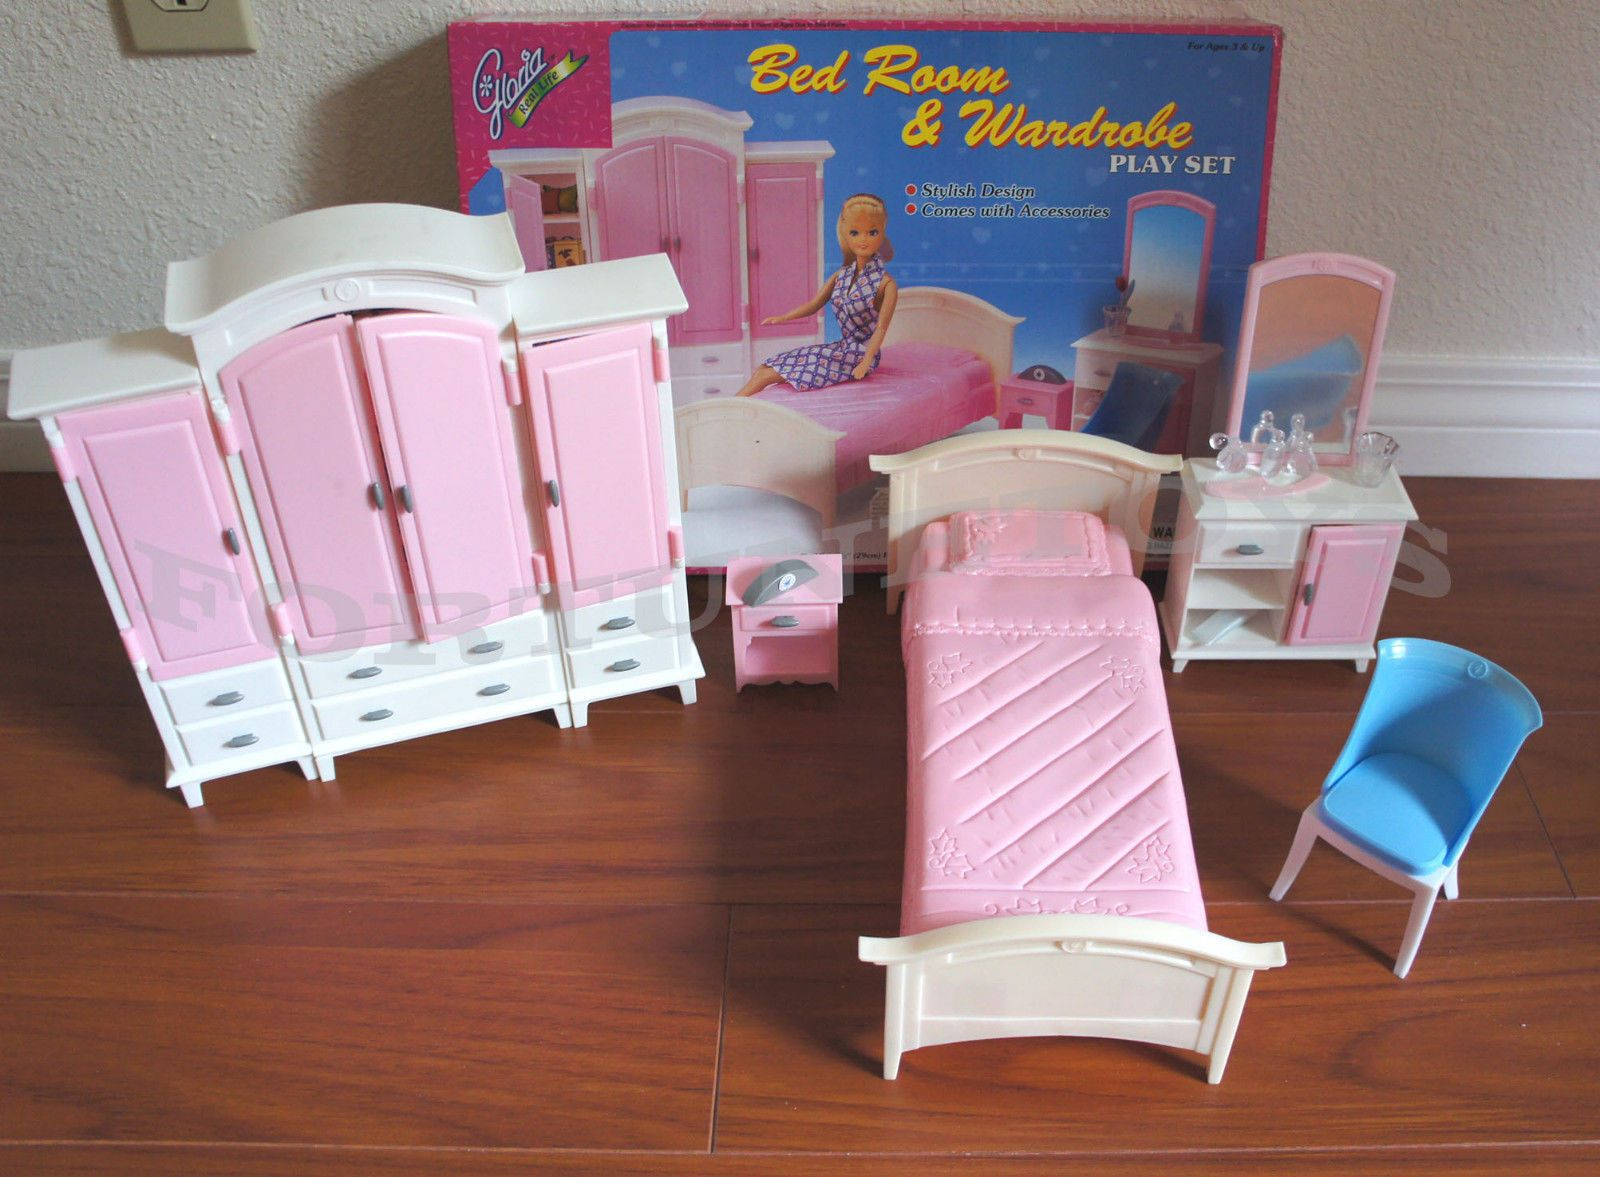 GLORIA FURNITURE Size BEAUTY BEDROOM W// MIRROR PILLOW PLAY SET FOR DOLL HOUSE